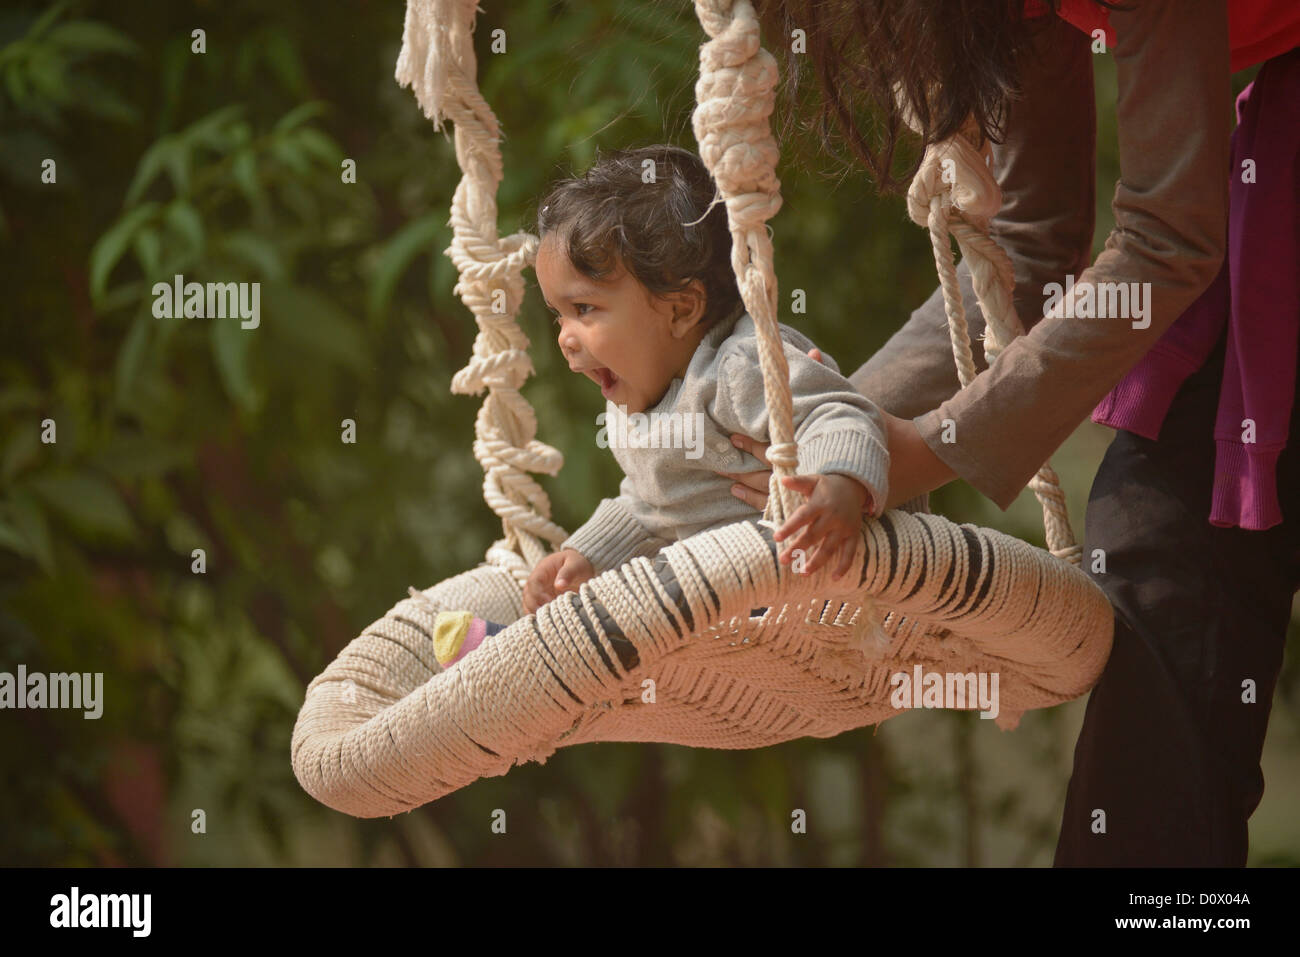 cute indian child on a swing stock photos & cute indian child on a